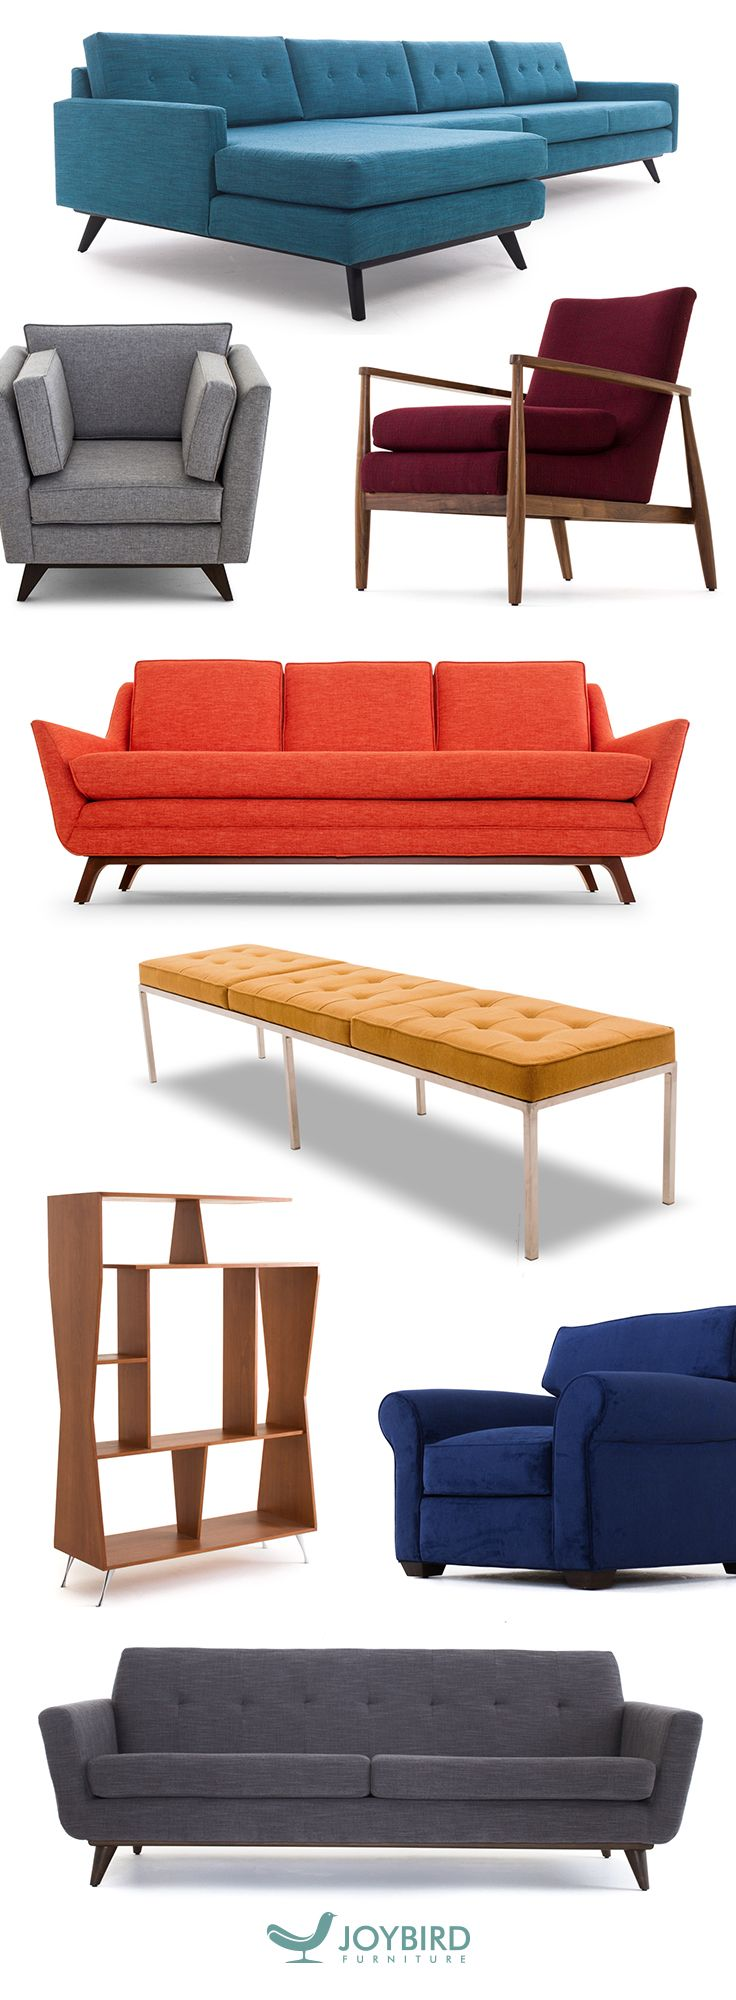 Ready To Upgrade Your Furniture? Shop Now U0026 Save Up To 25% Off During